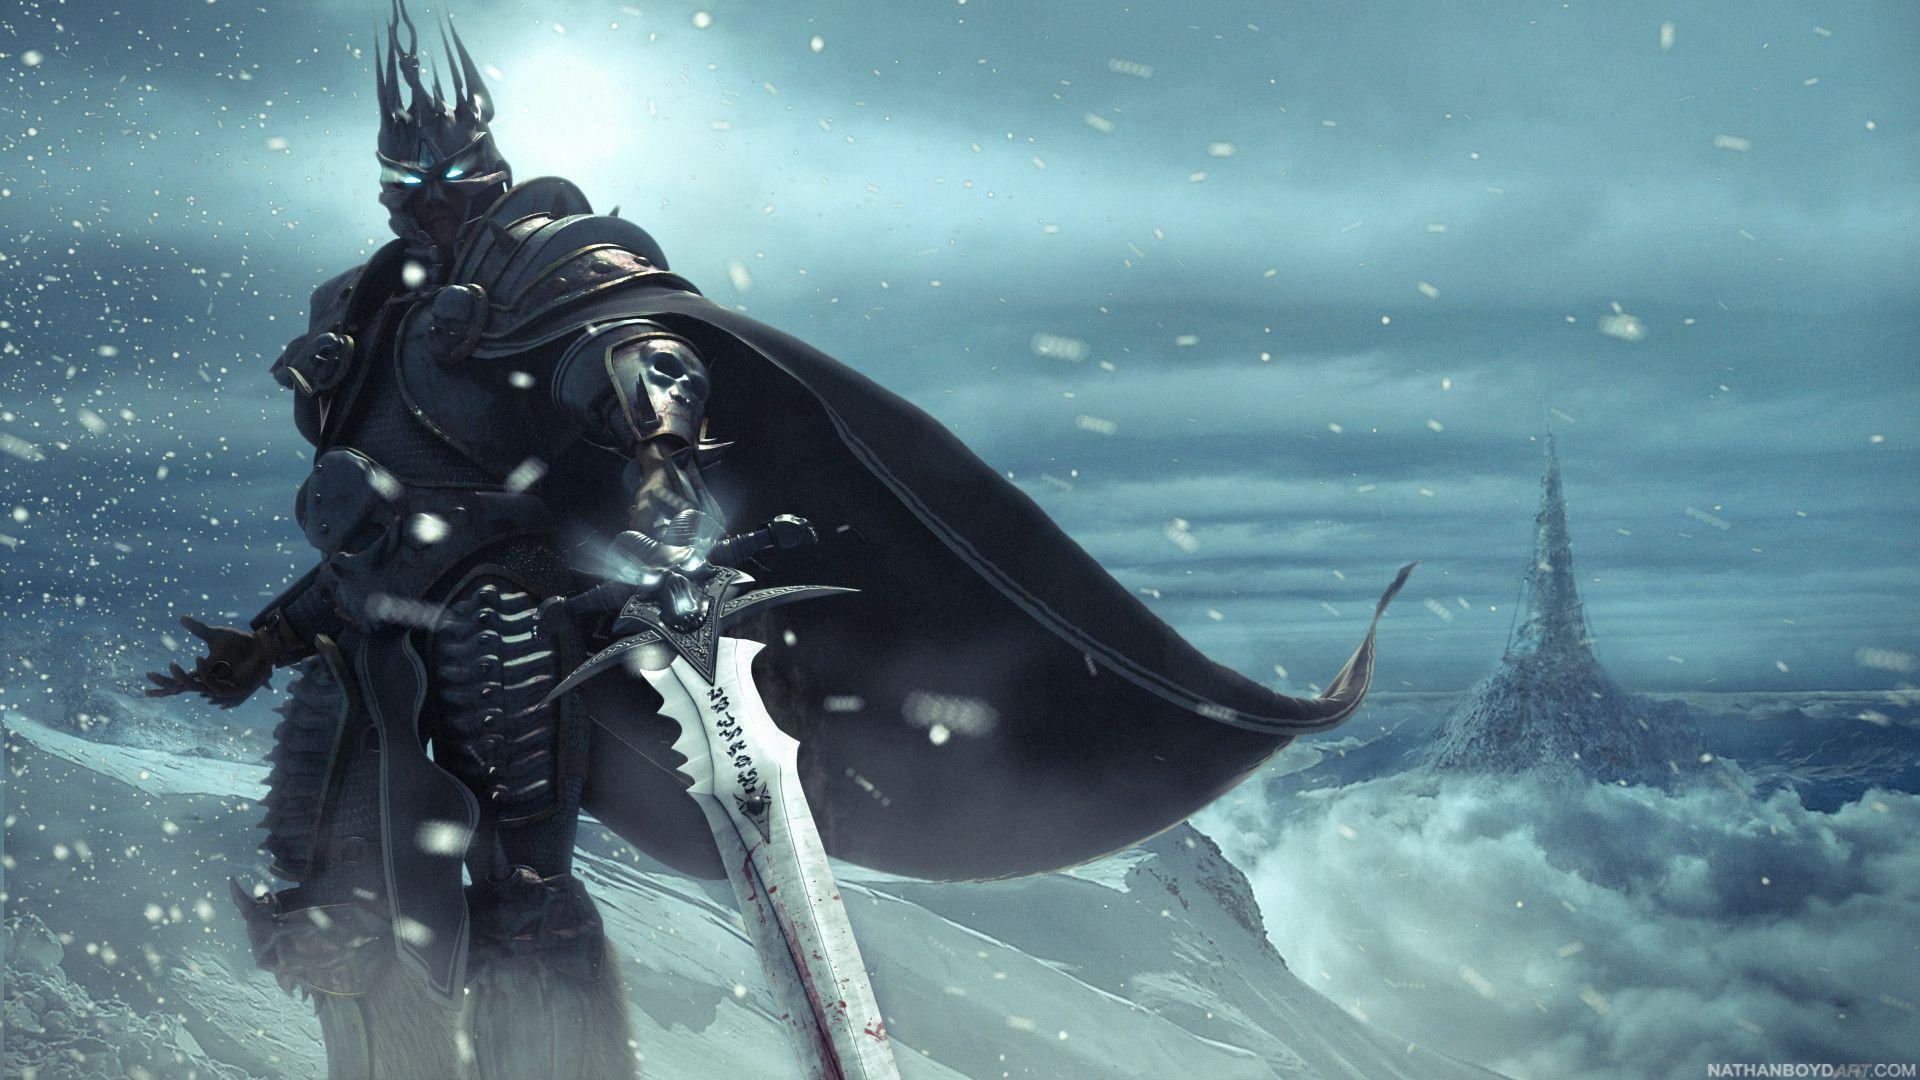 1920x1080 Lich king wow Wallpapers 1920x1080